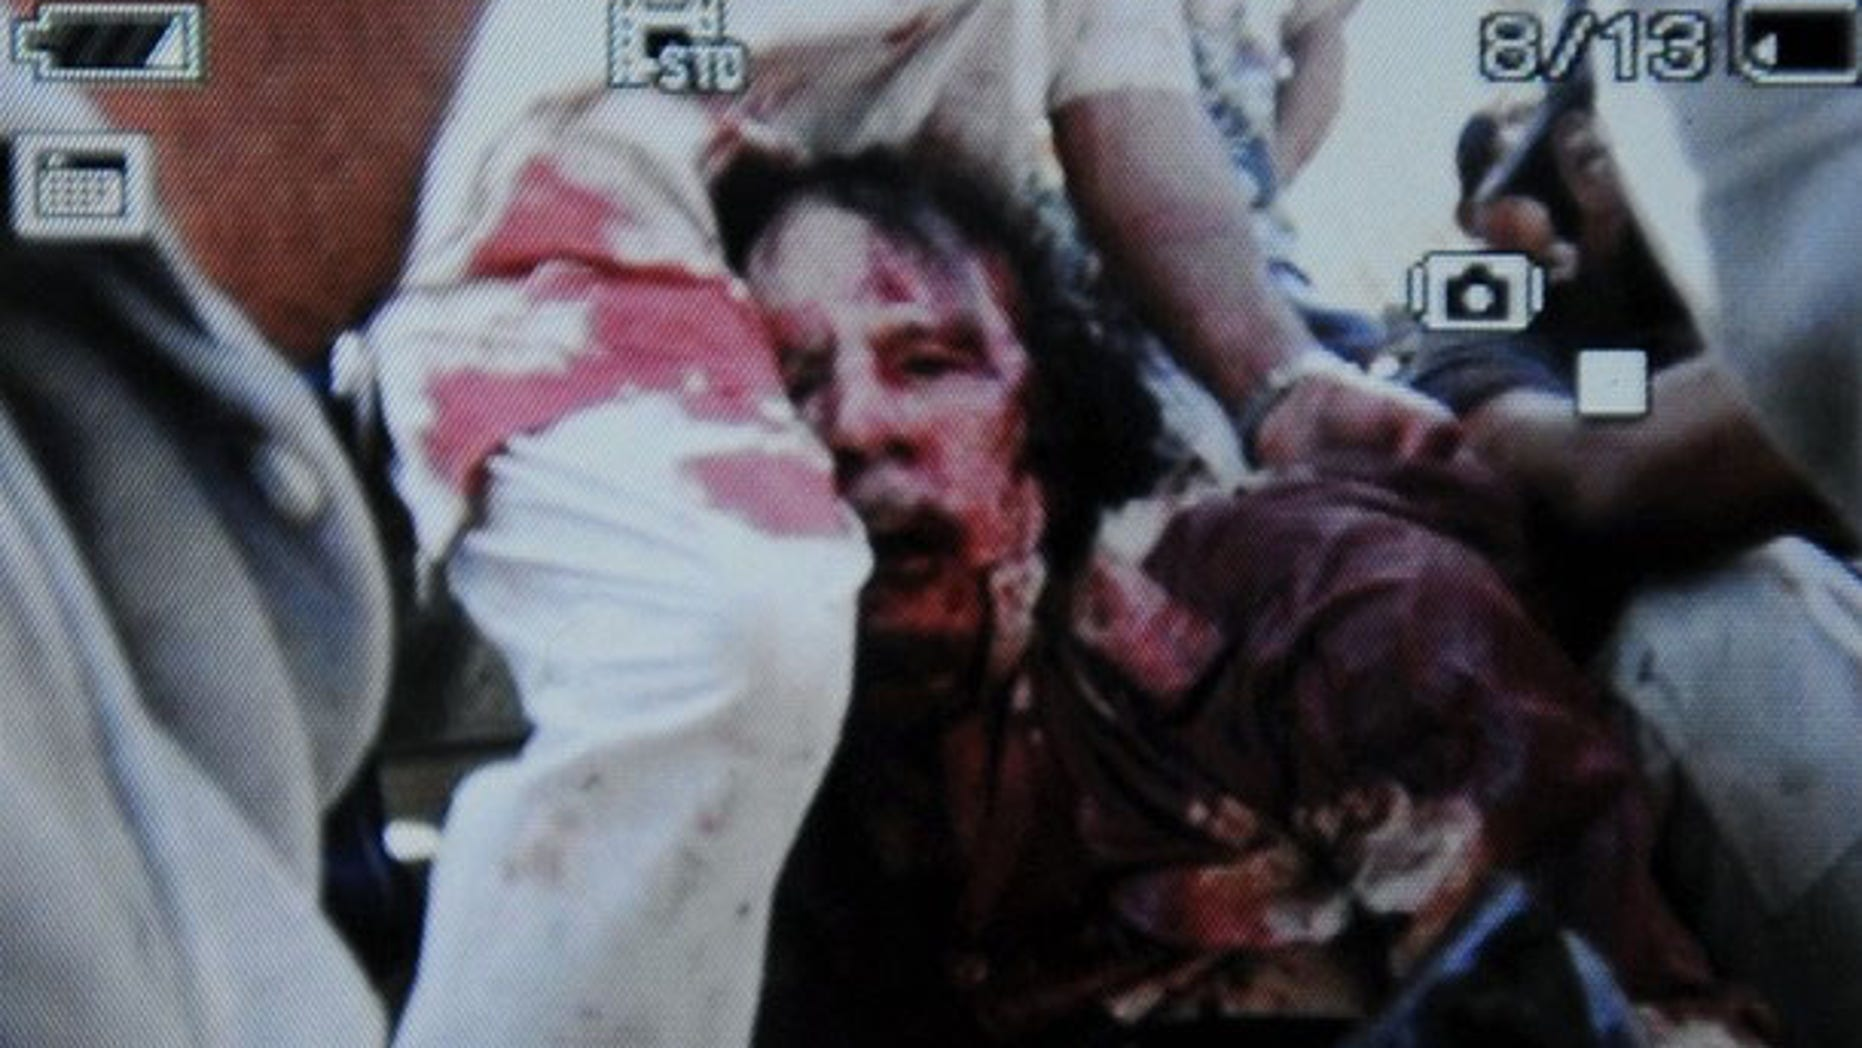 An image captured by AFP from a cell phone purportedly shows a wounded or dead Muammar Qaddafi.